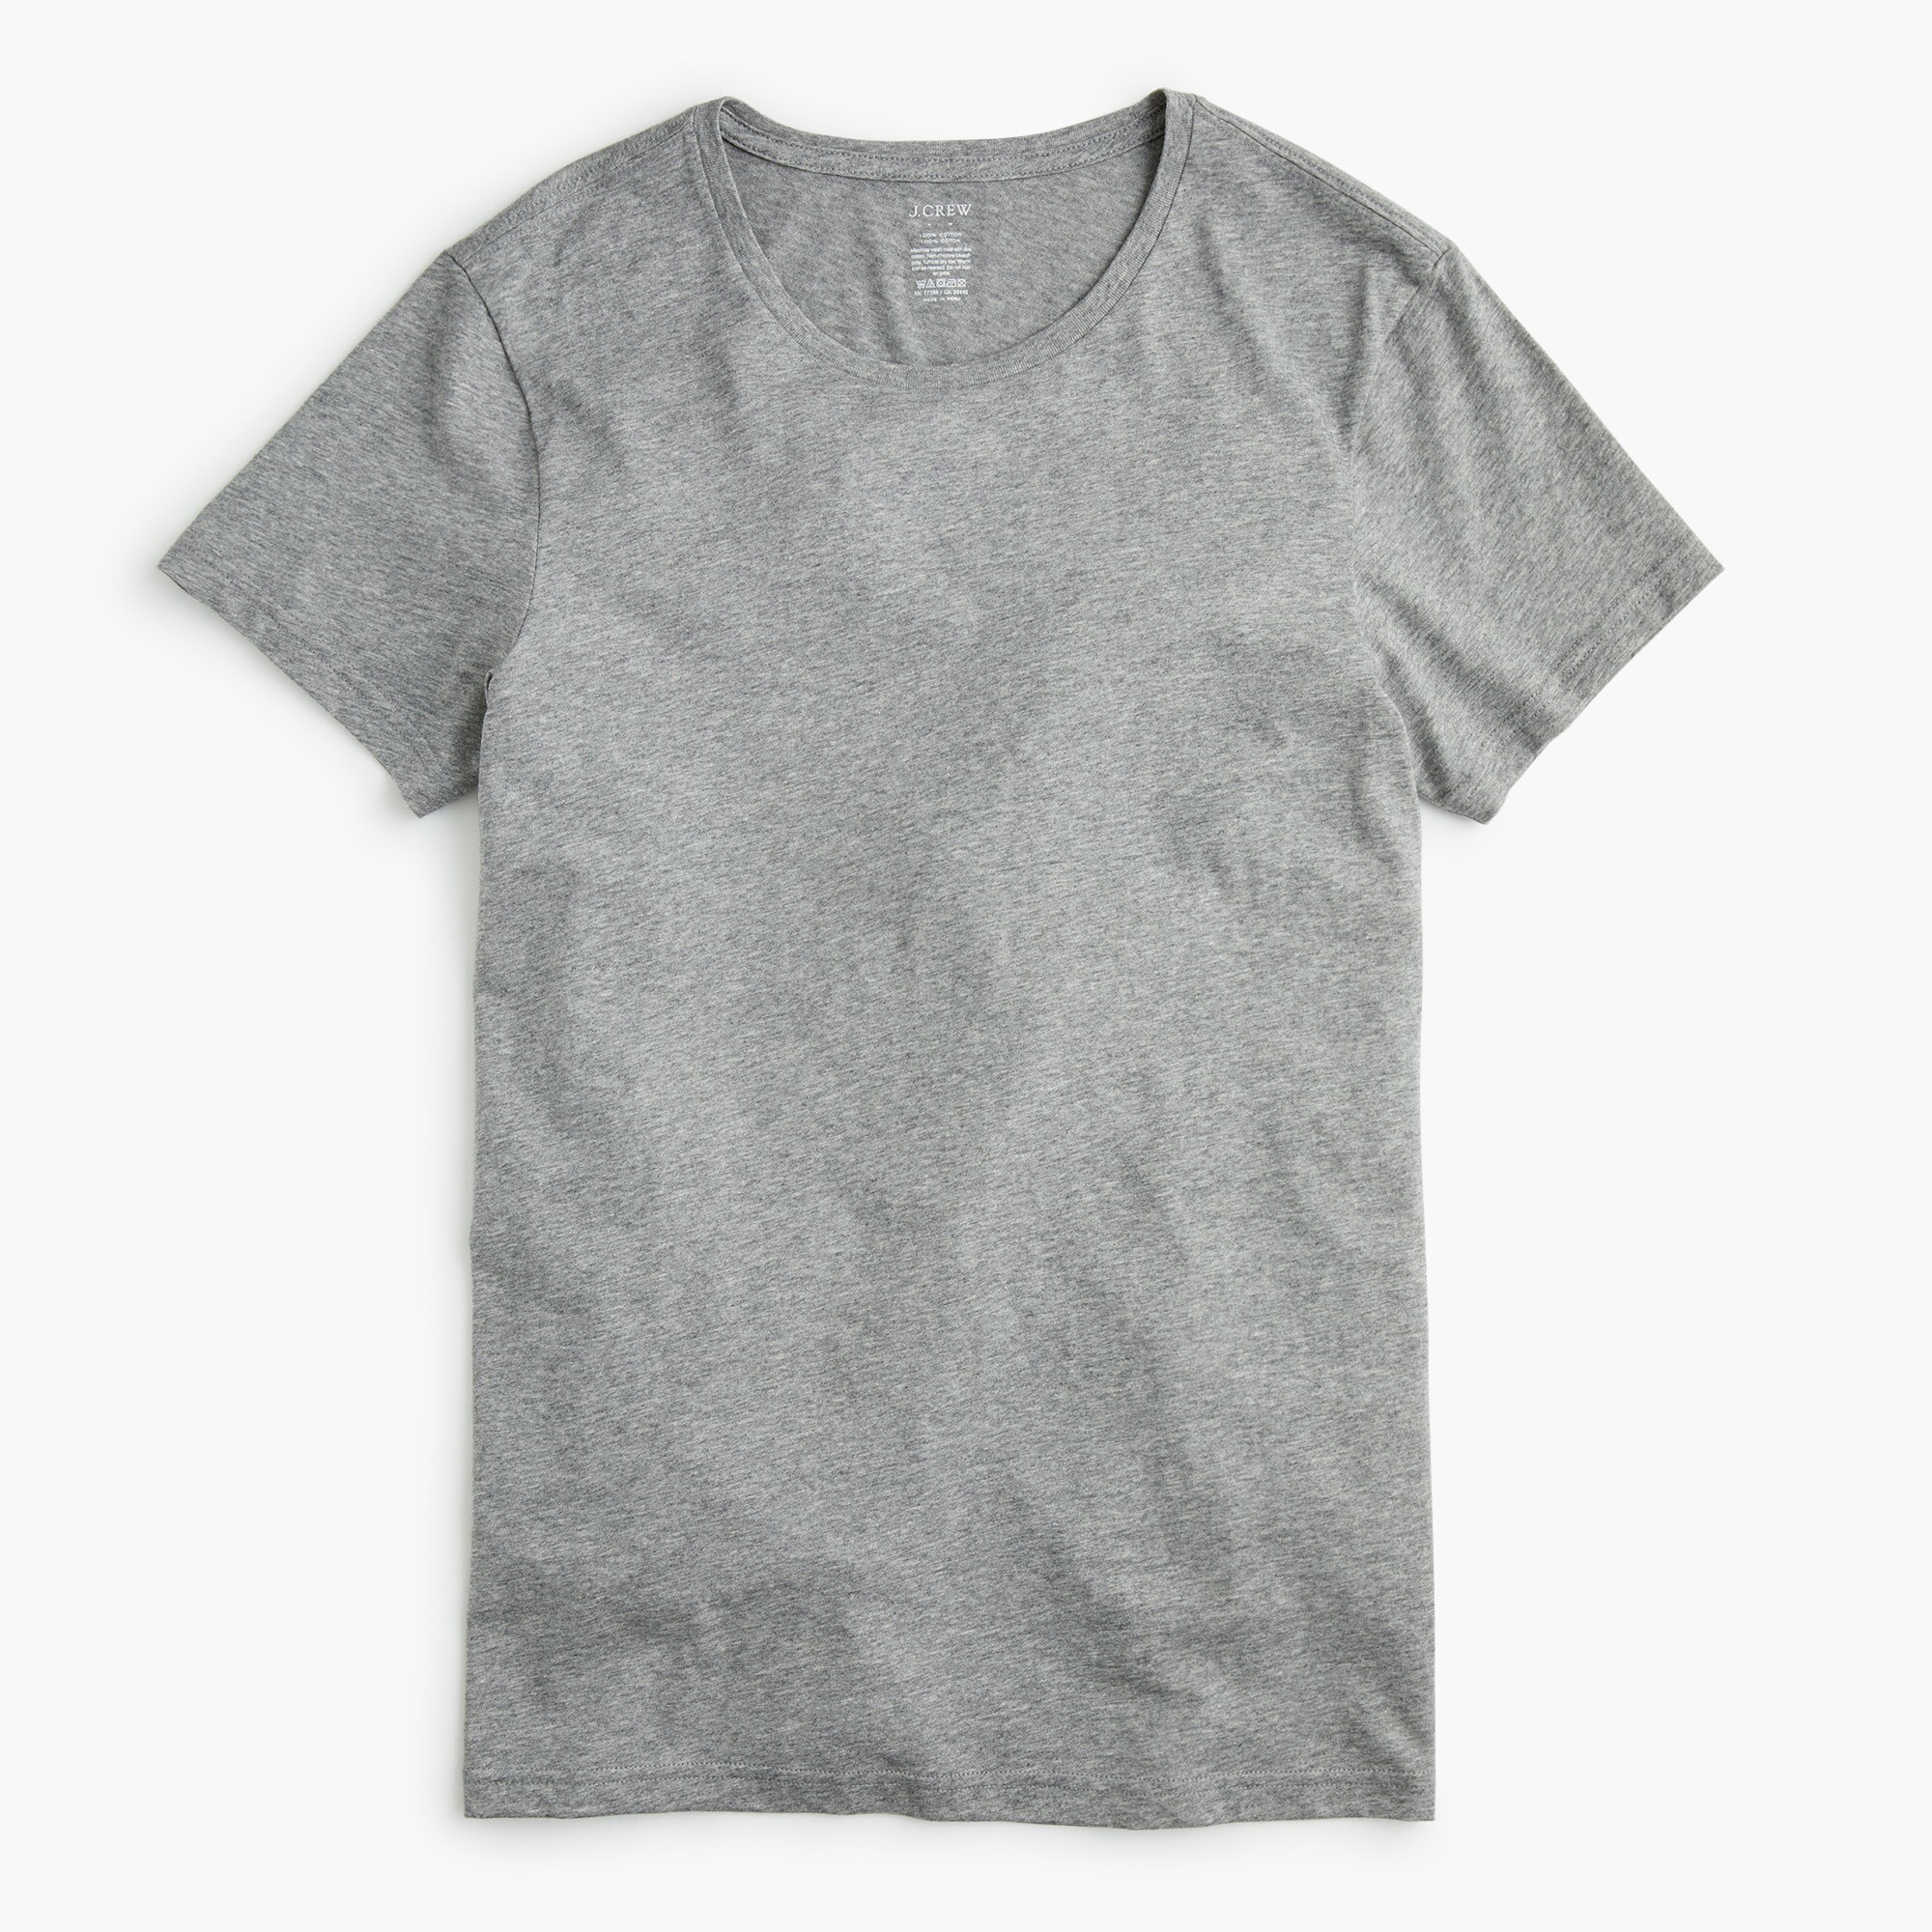 Heather grey crewneck undershirt